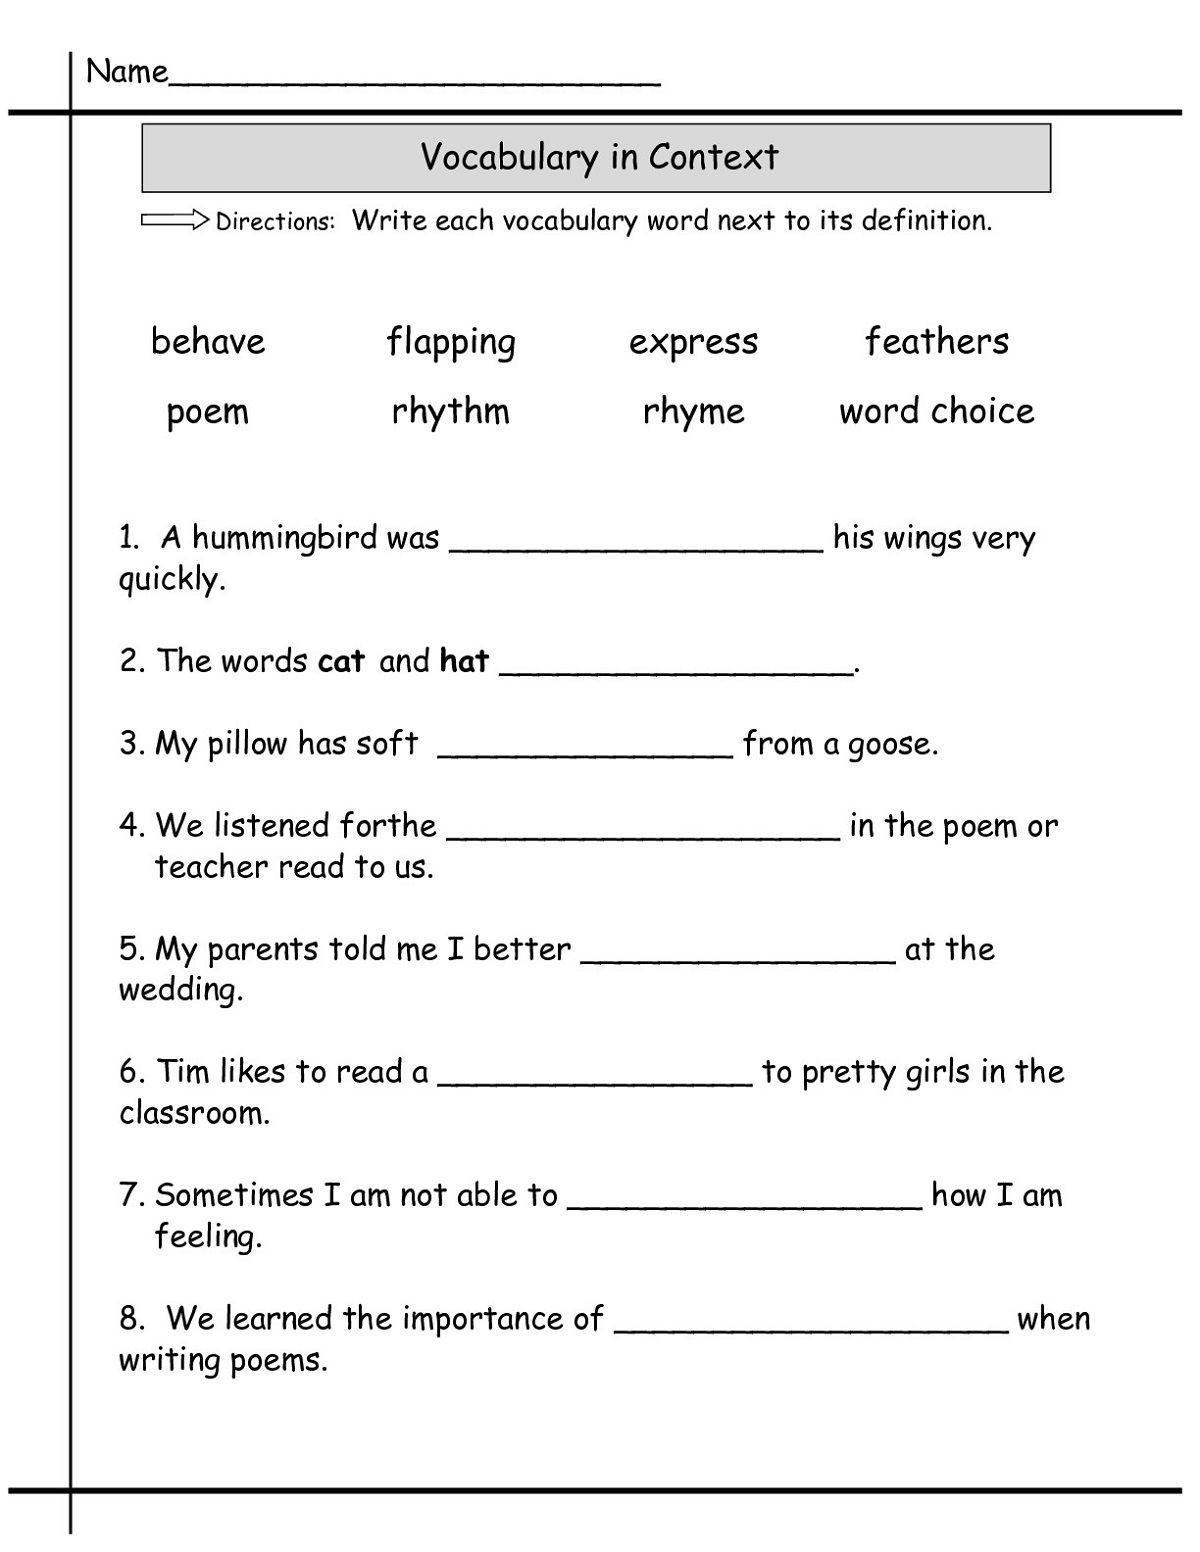 Third Grade Phonics Worksheets Math Worksheet 2nd Grade Phonics Worksheets Math Worksheet